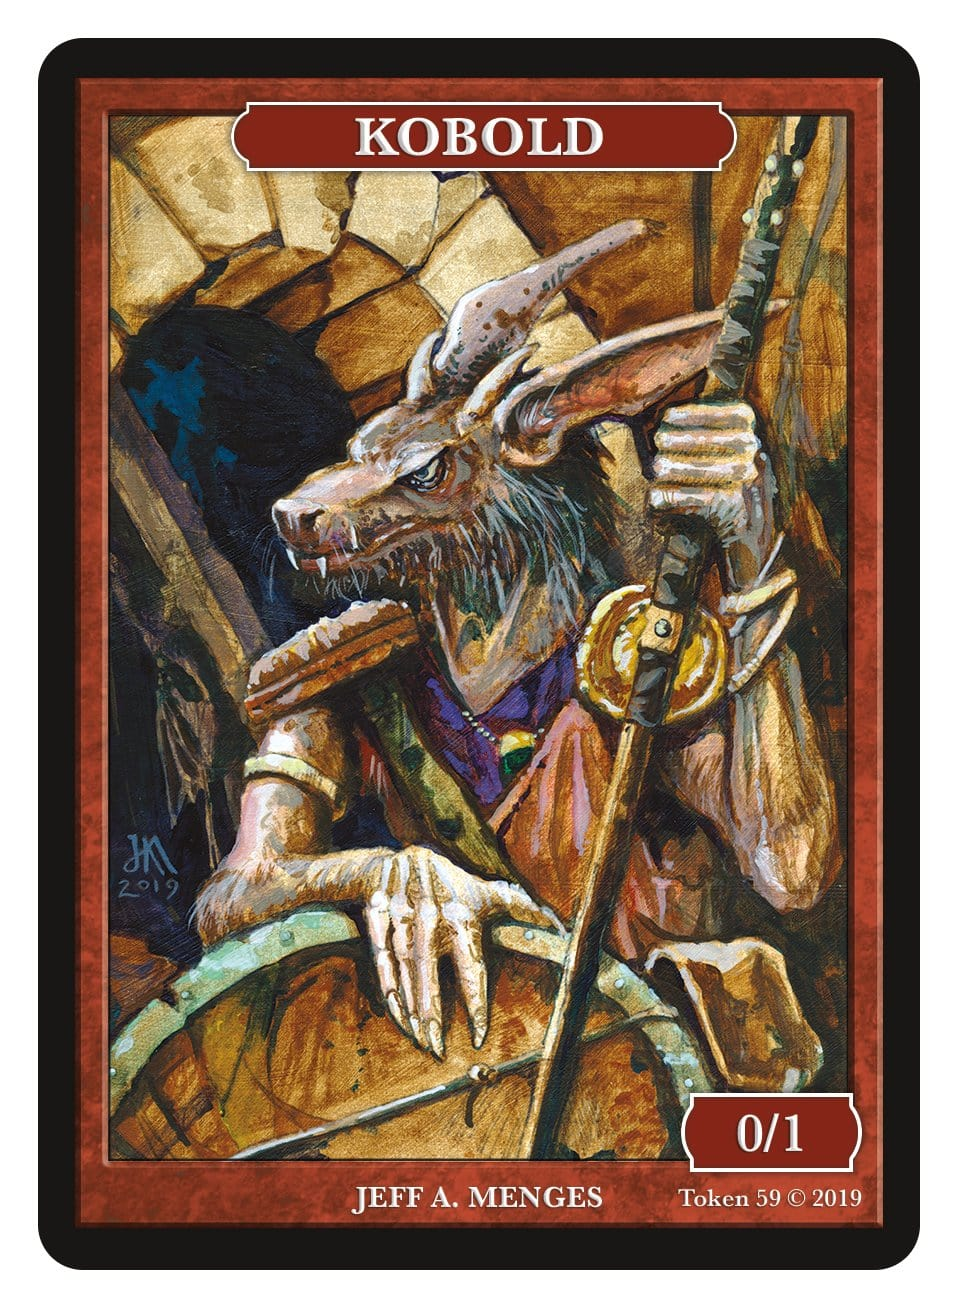 Kobold Token (0/1) by Jeff A. Menges - Token - Original Magic Art - Accessories for Magic the Gathering and other card games